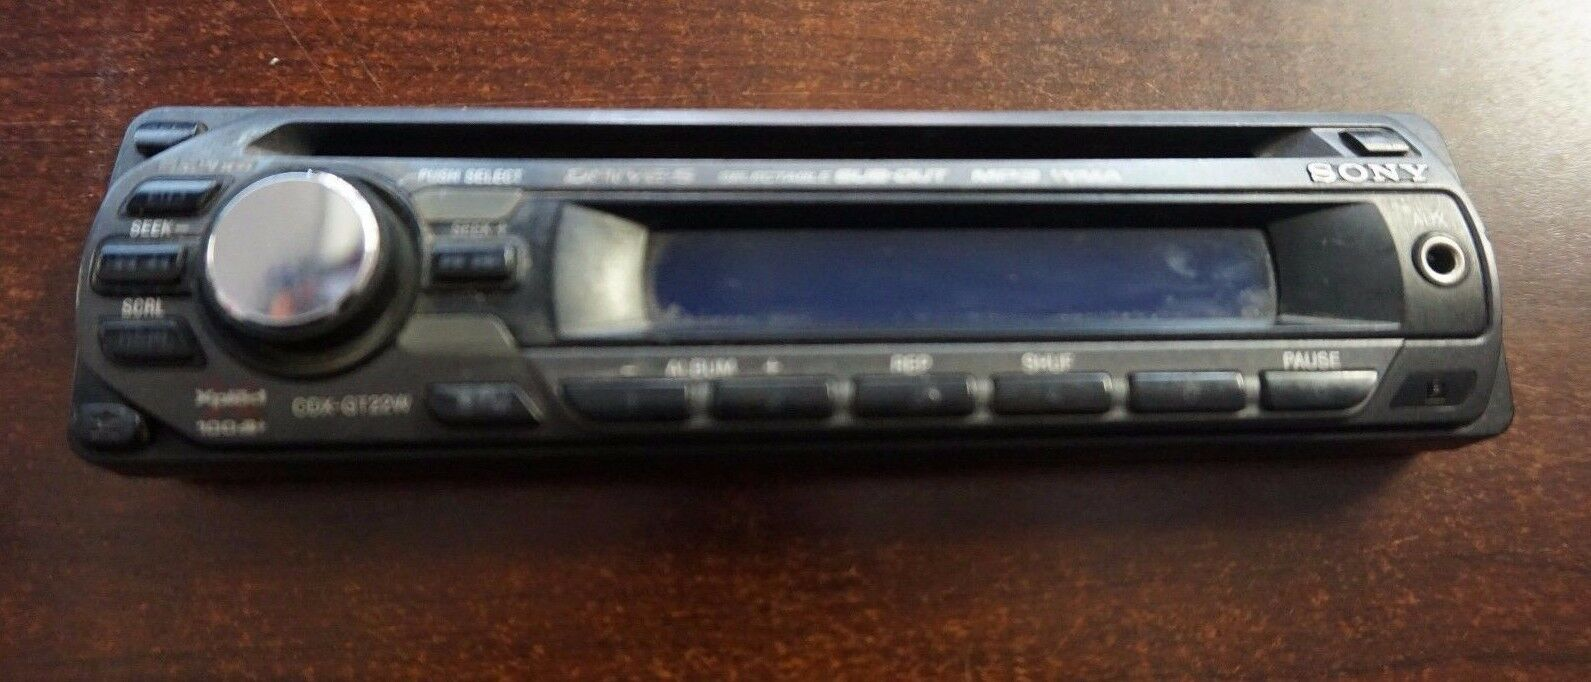 Sony Cdx Gt22w Faceplate 1995 Picclick Car Stereo Wiring Harness Gt620ip 1 Of 1only 3 Available